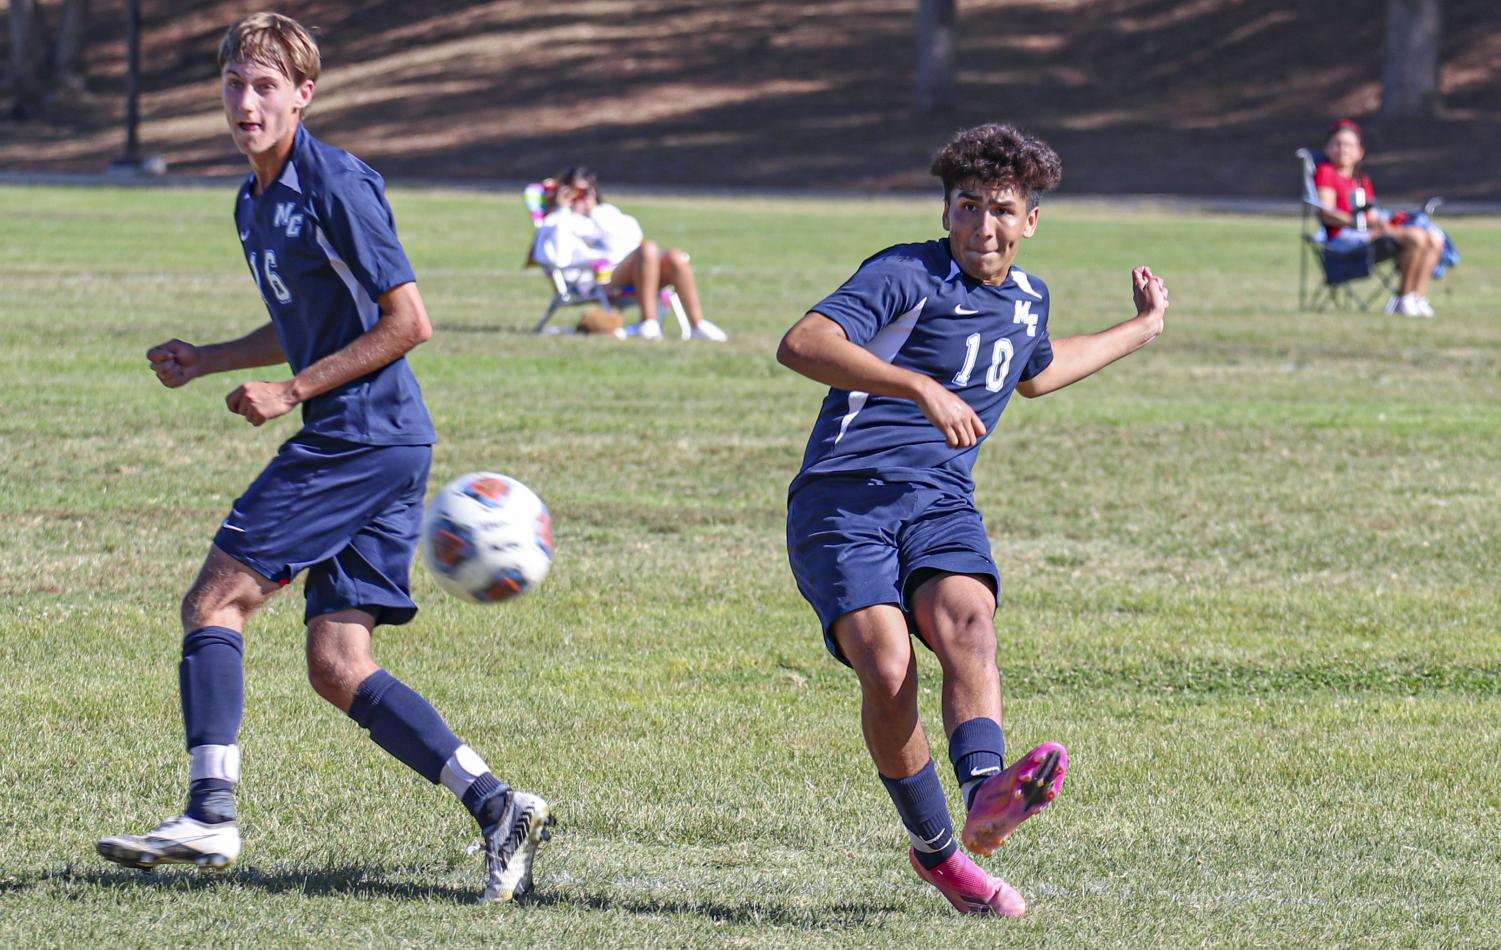 Tony Reyes takes a shot on goal in the second half of Friday's game that ricochets off of multiple Palomar defenders.